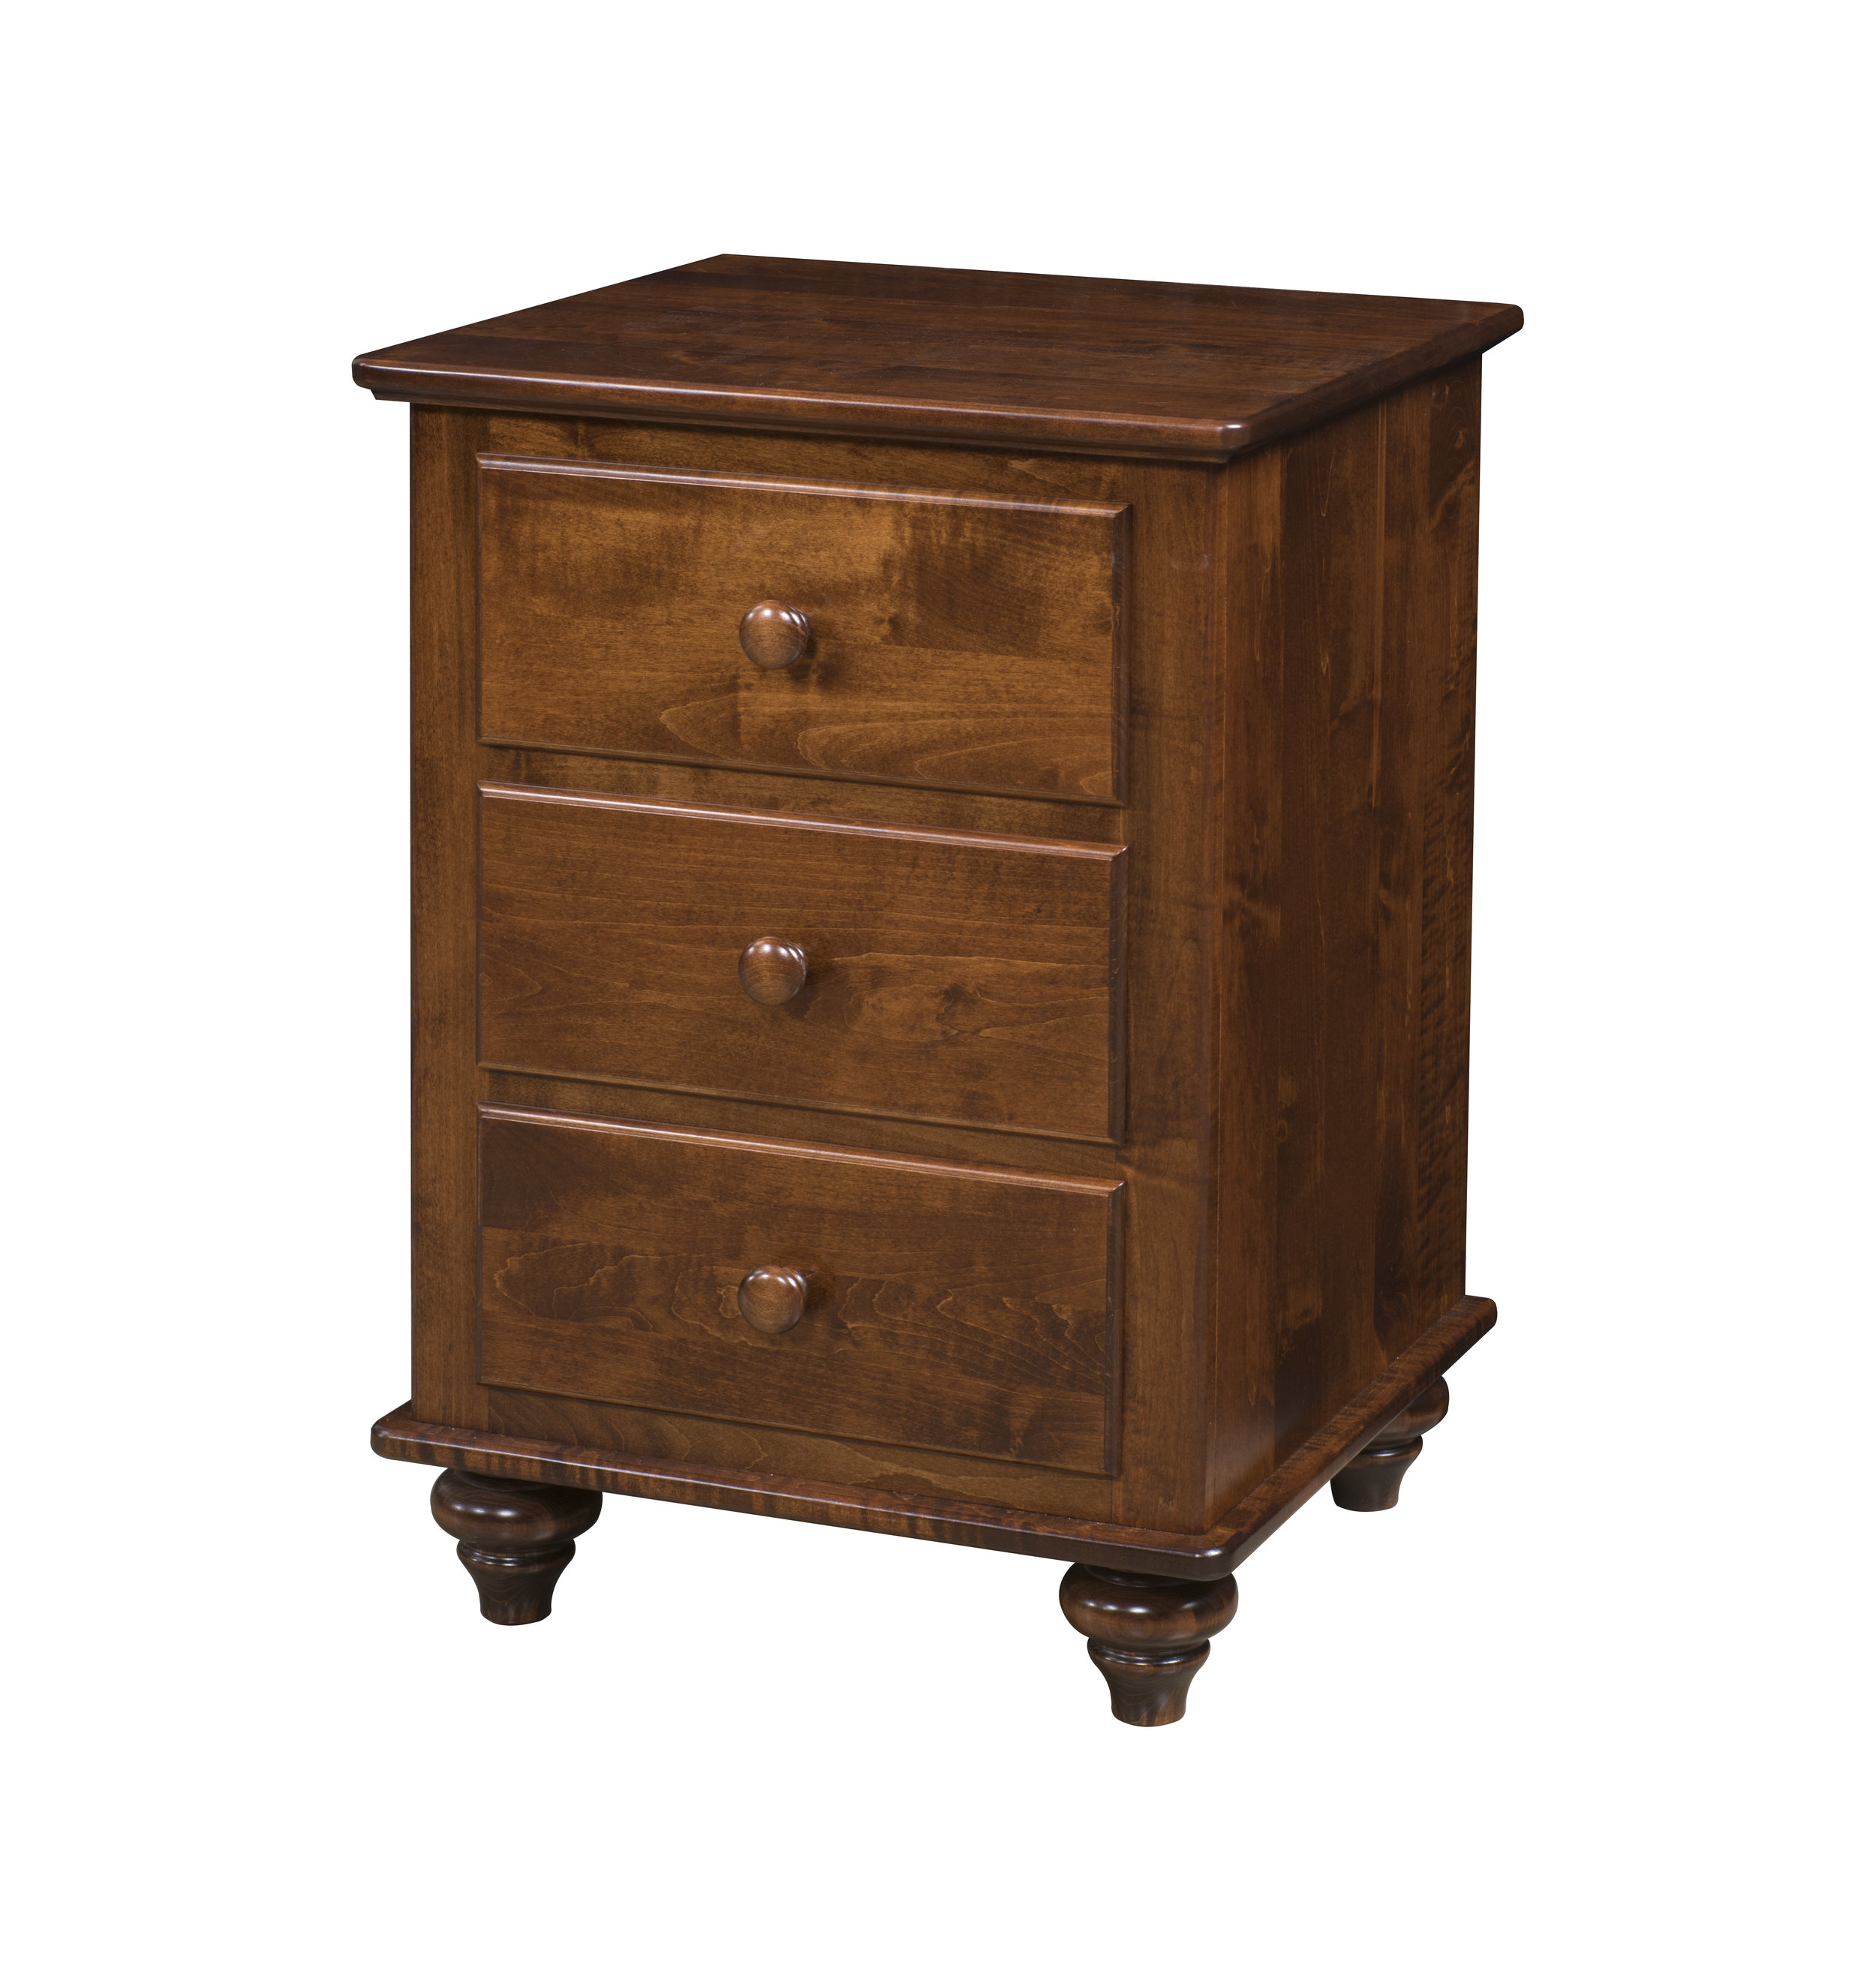 WB-1742 Night Stand.jpg